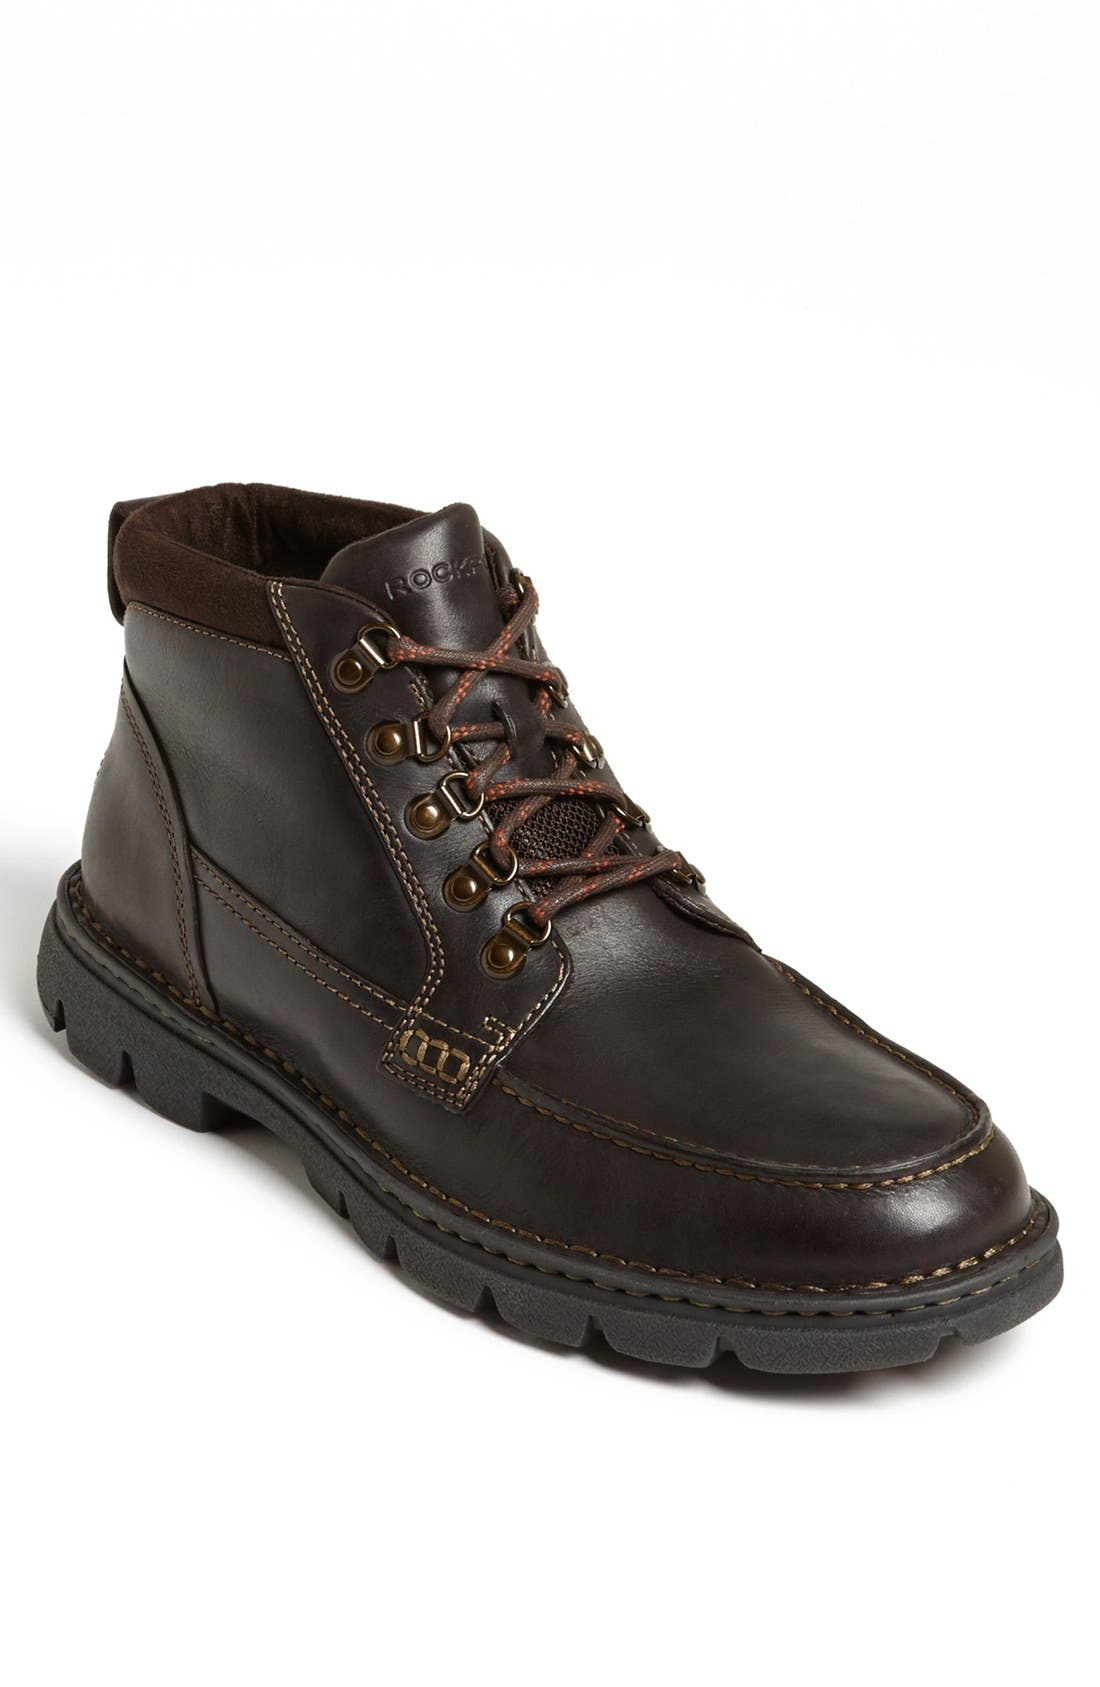 'RocSports Rugged' Moc Toe Boot,                             Main thumbnail 1, color,                             Brown